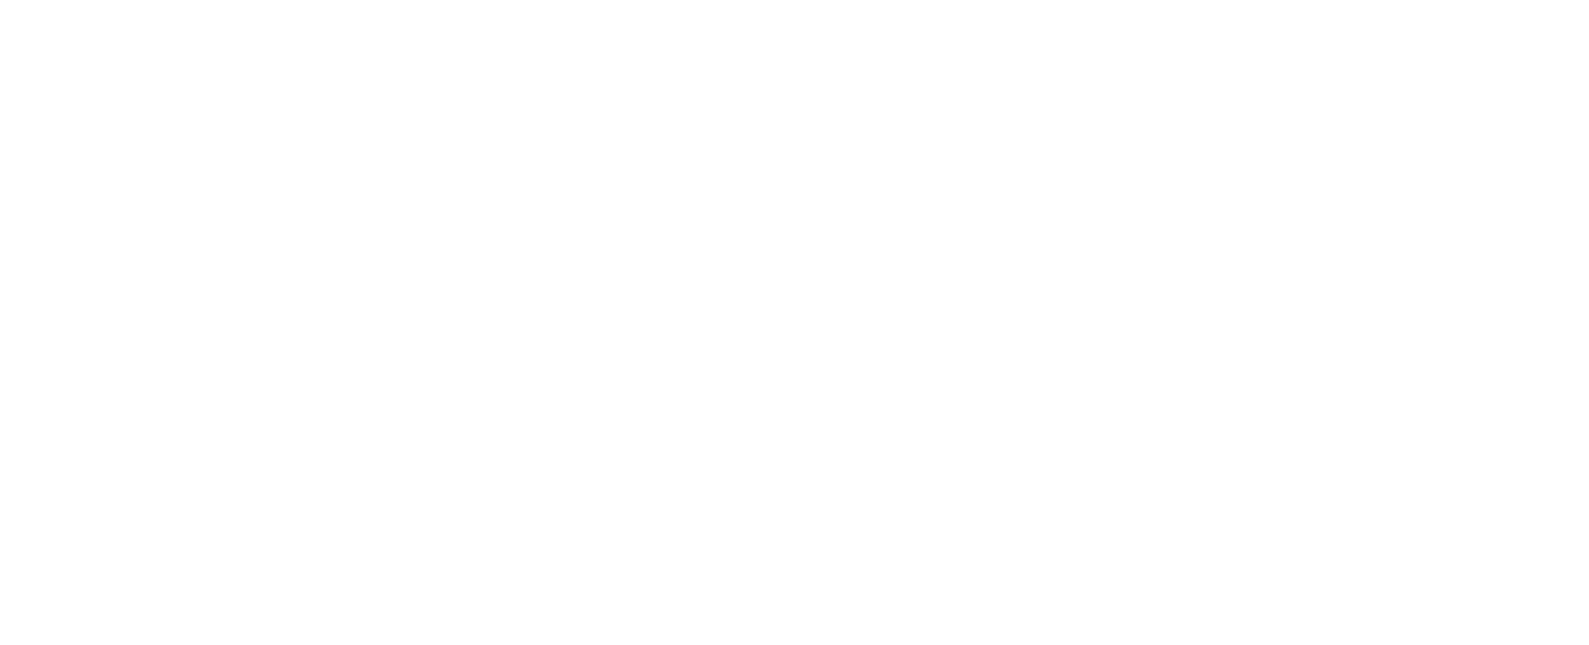 Andelsman Law Private Lending Law Firm